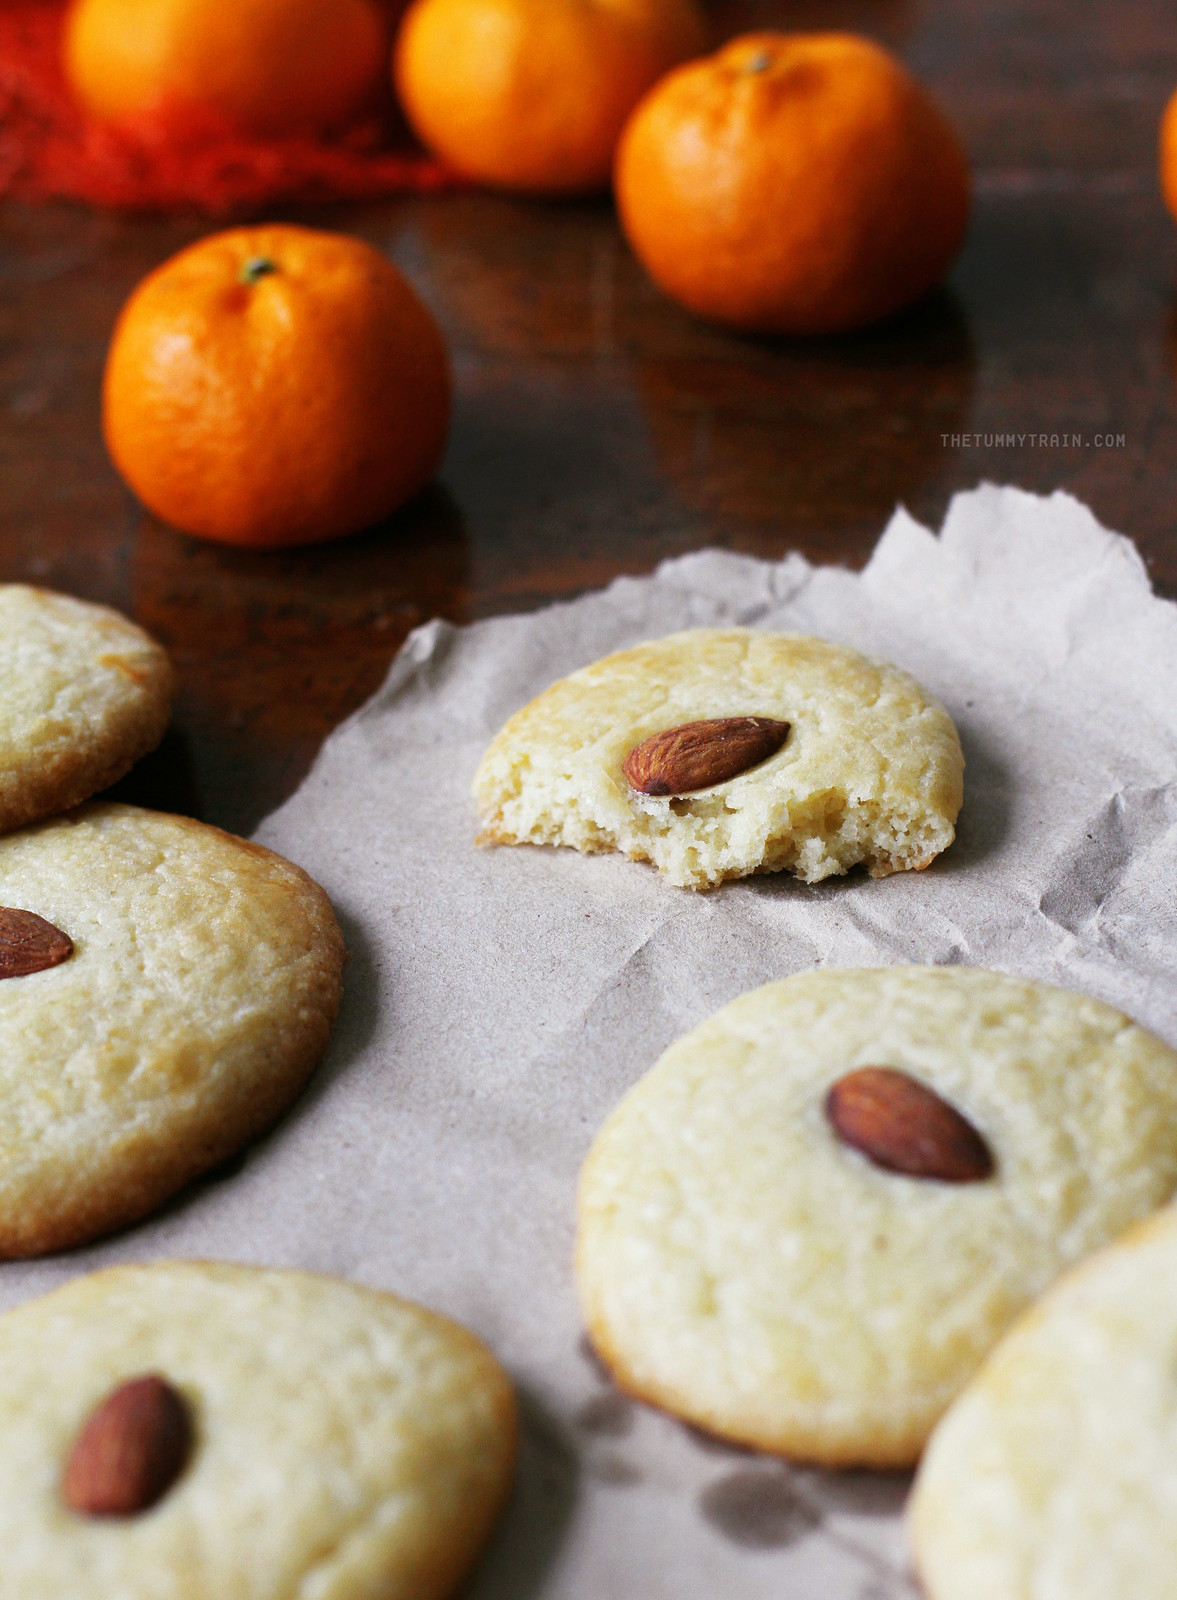 24247062693 d8ec9b5e03 h - Celebrating with these Lunar New Year Almond Cookies